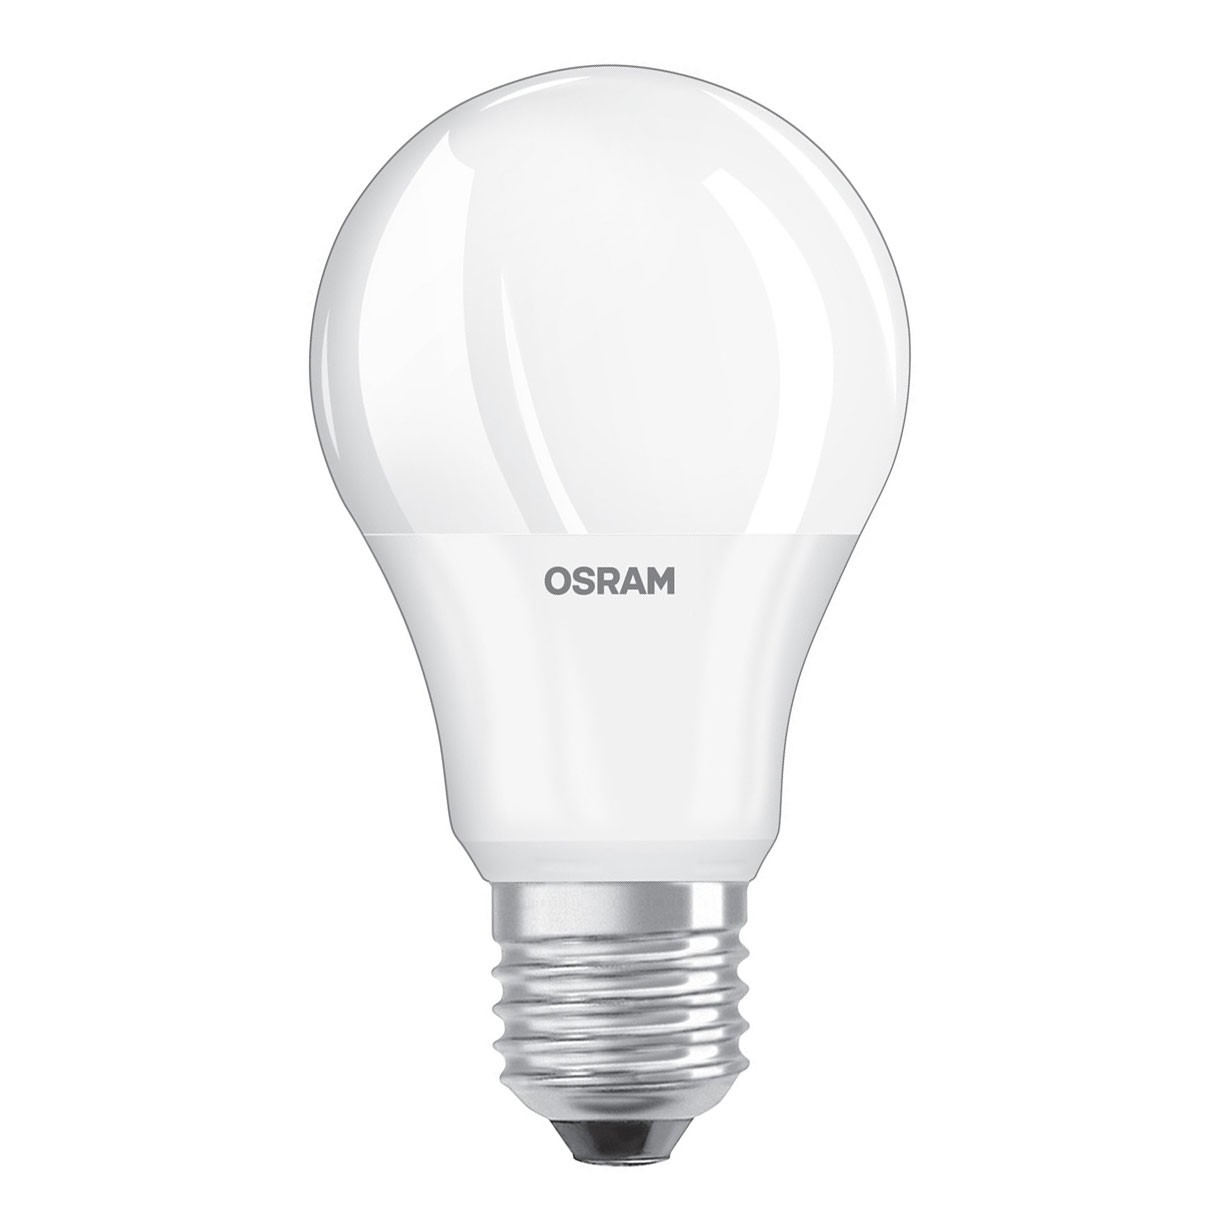 dedeman bec led osram clasic a40 e27 5 5w lumina calda. Black Bedroom Furniture Sets. Home Design Ideas